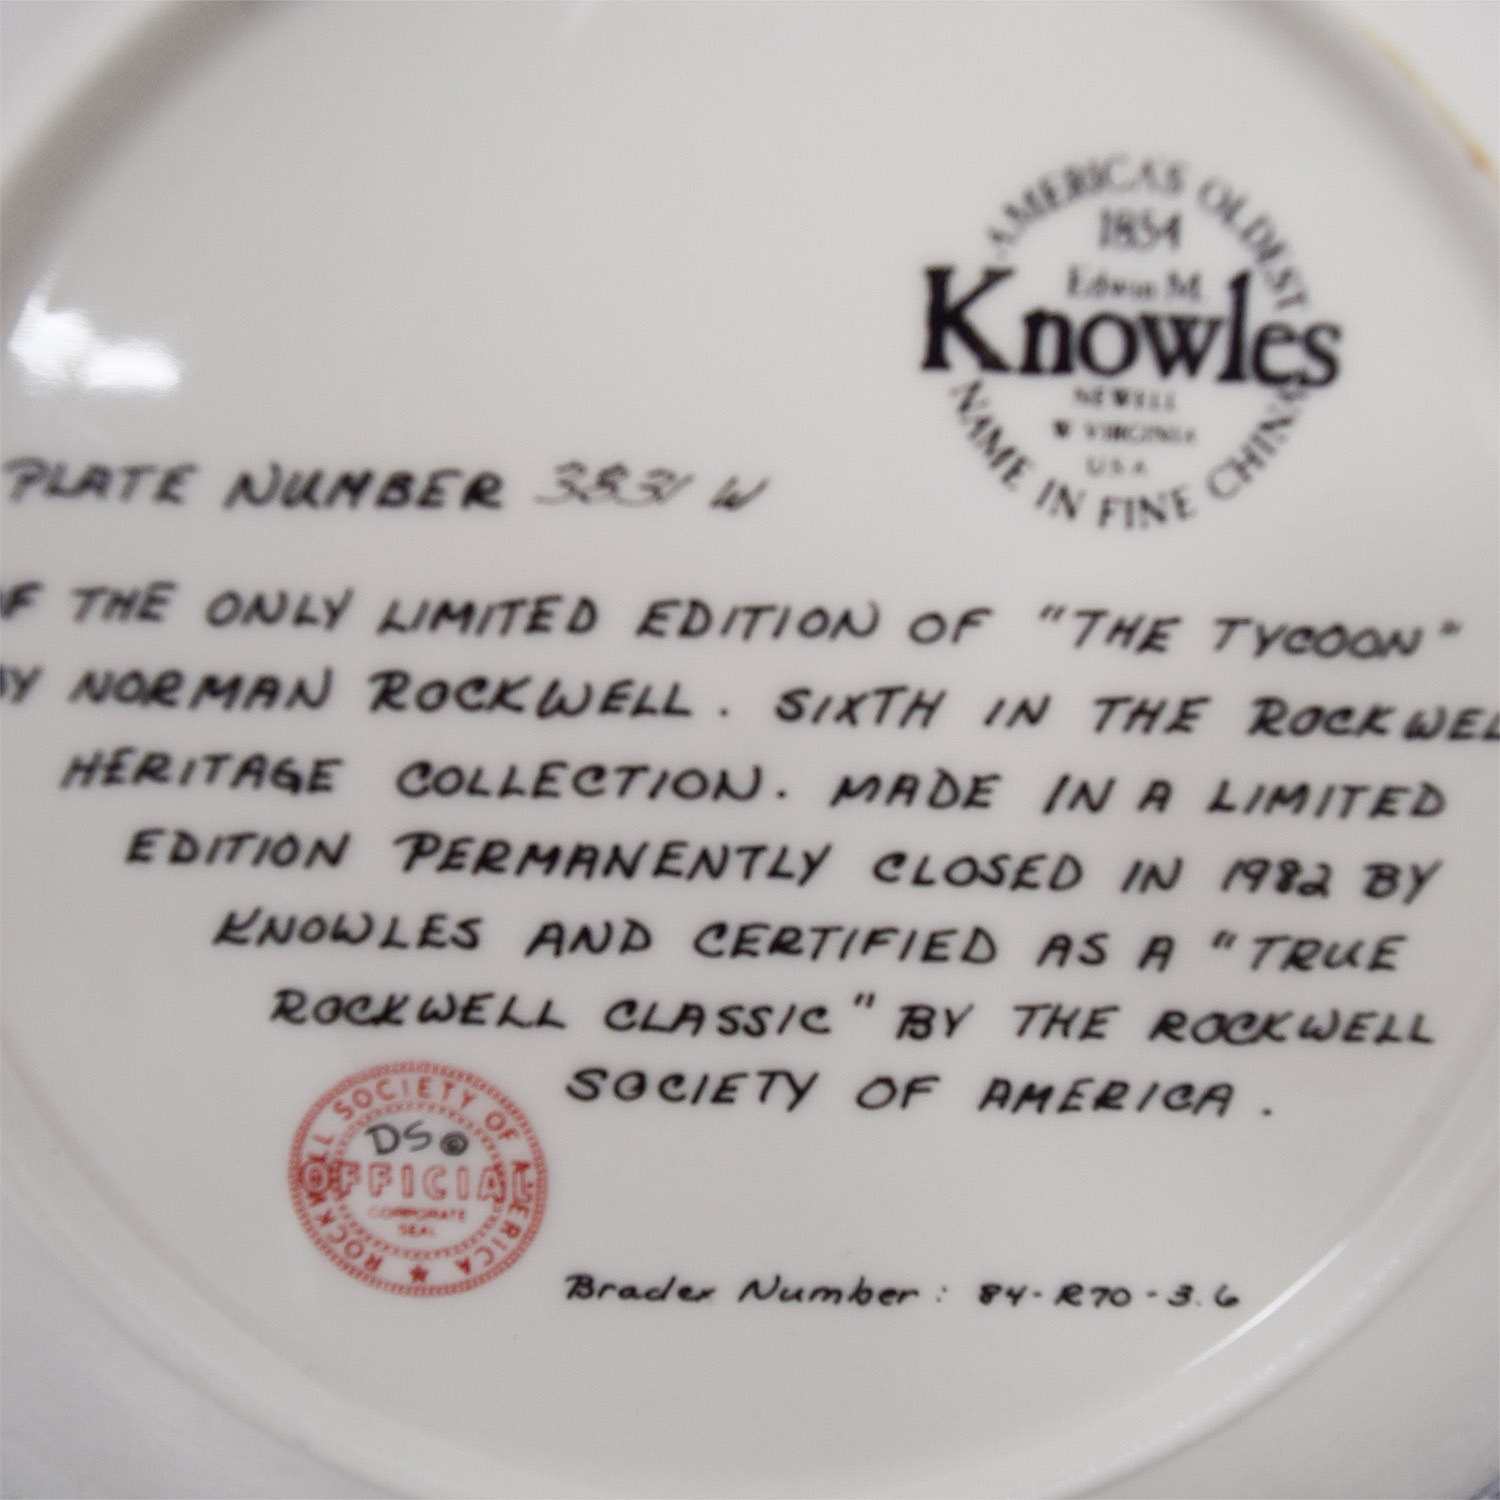 buy Edward Knowles Reproduction Plate Norman Rockwell The Tycoon Edward M. Knowles